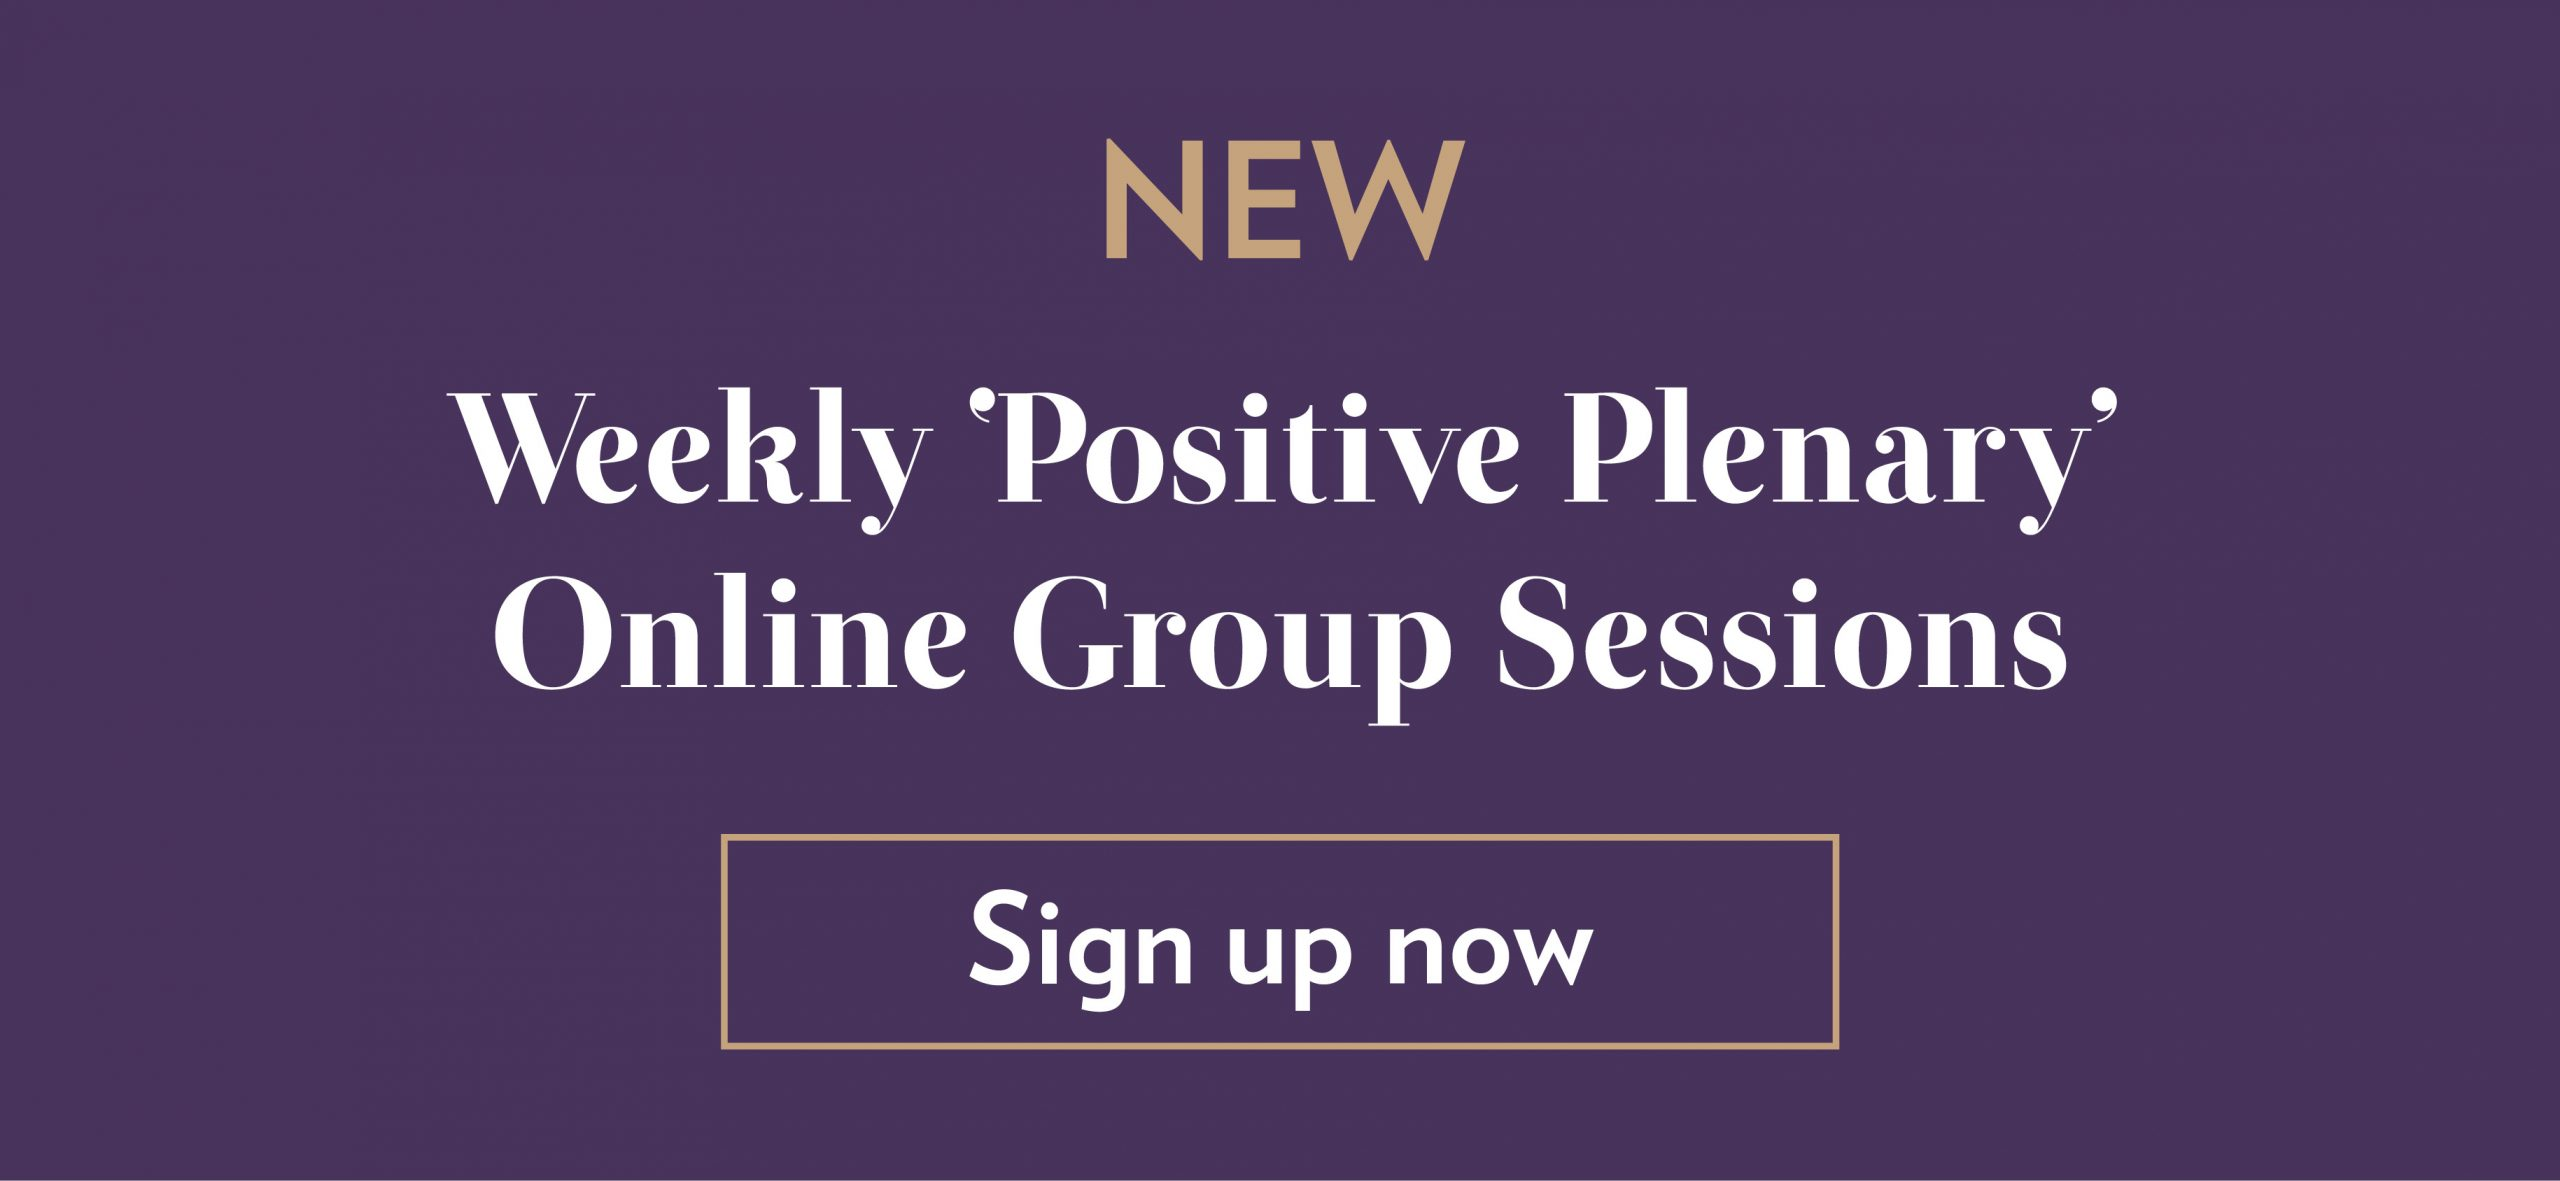 New Online Positive Plenary Group Sessions